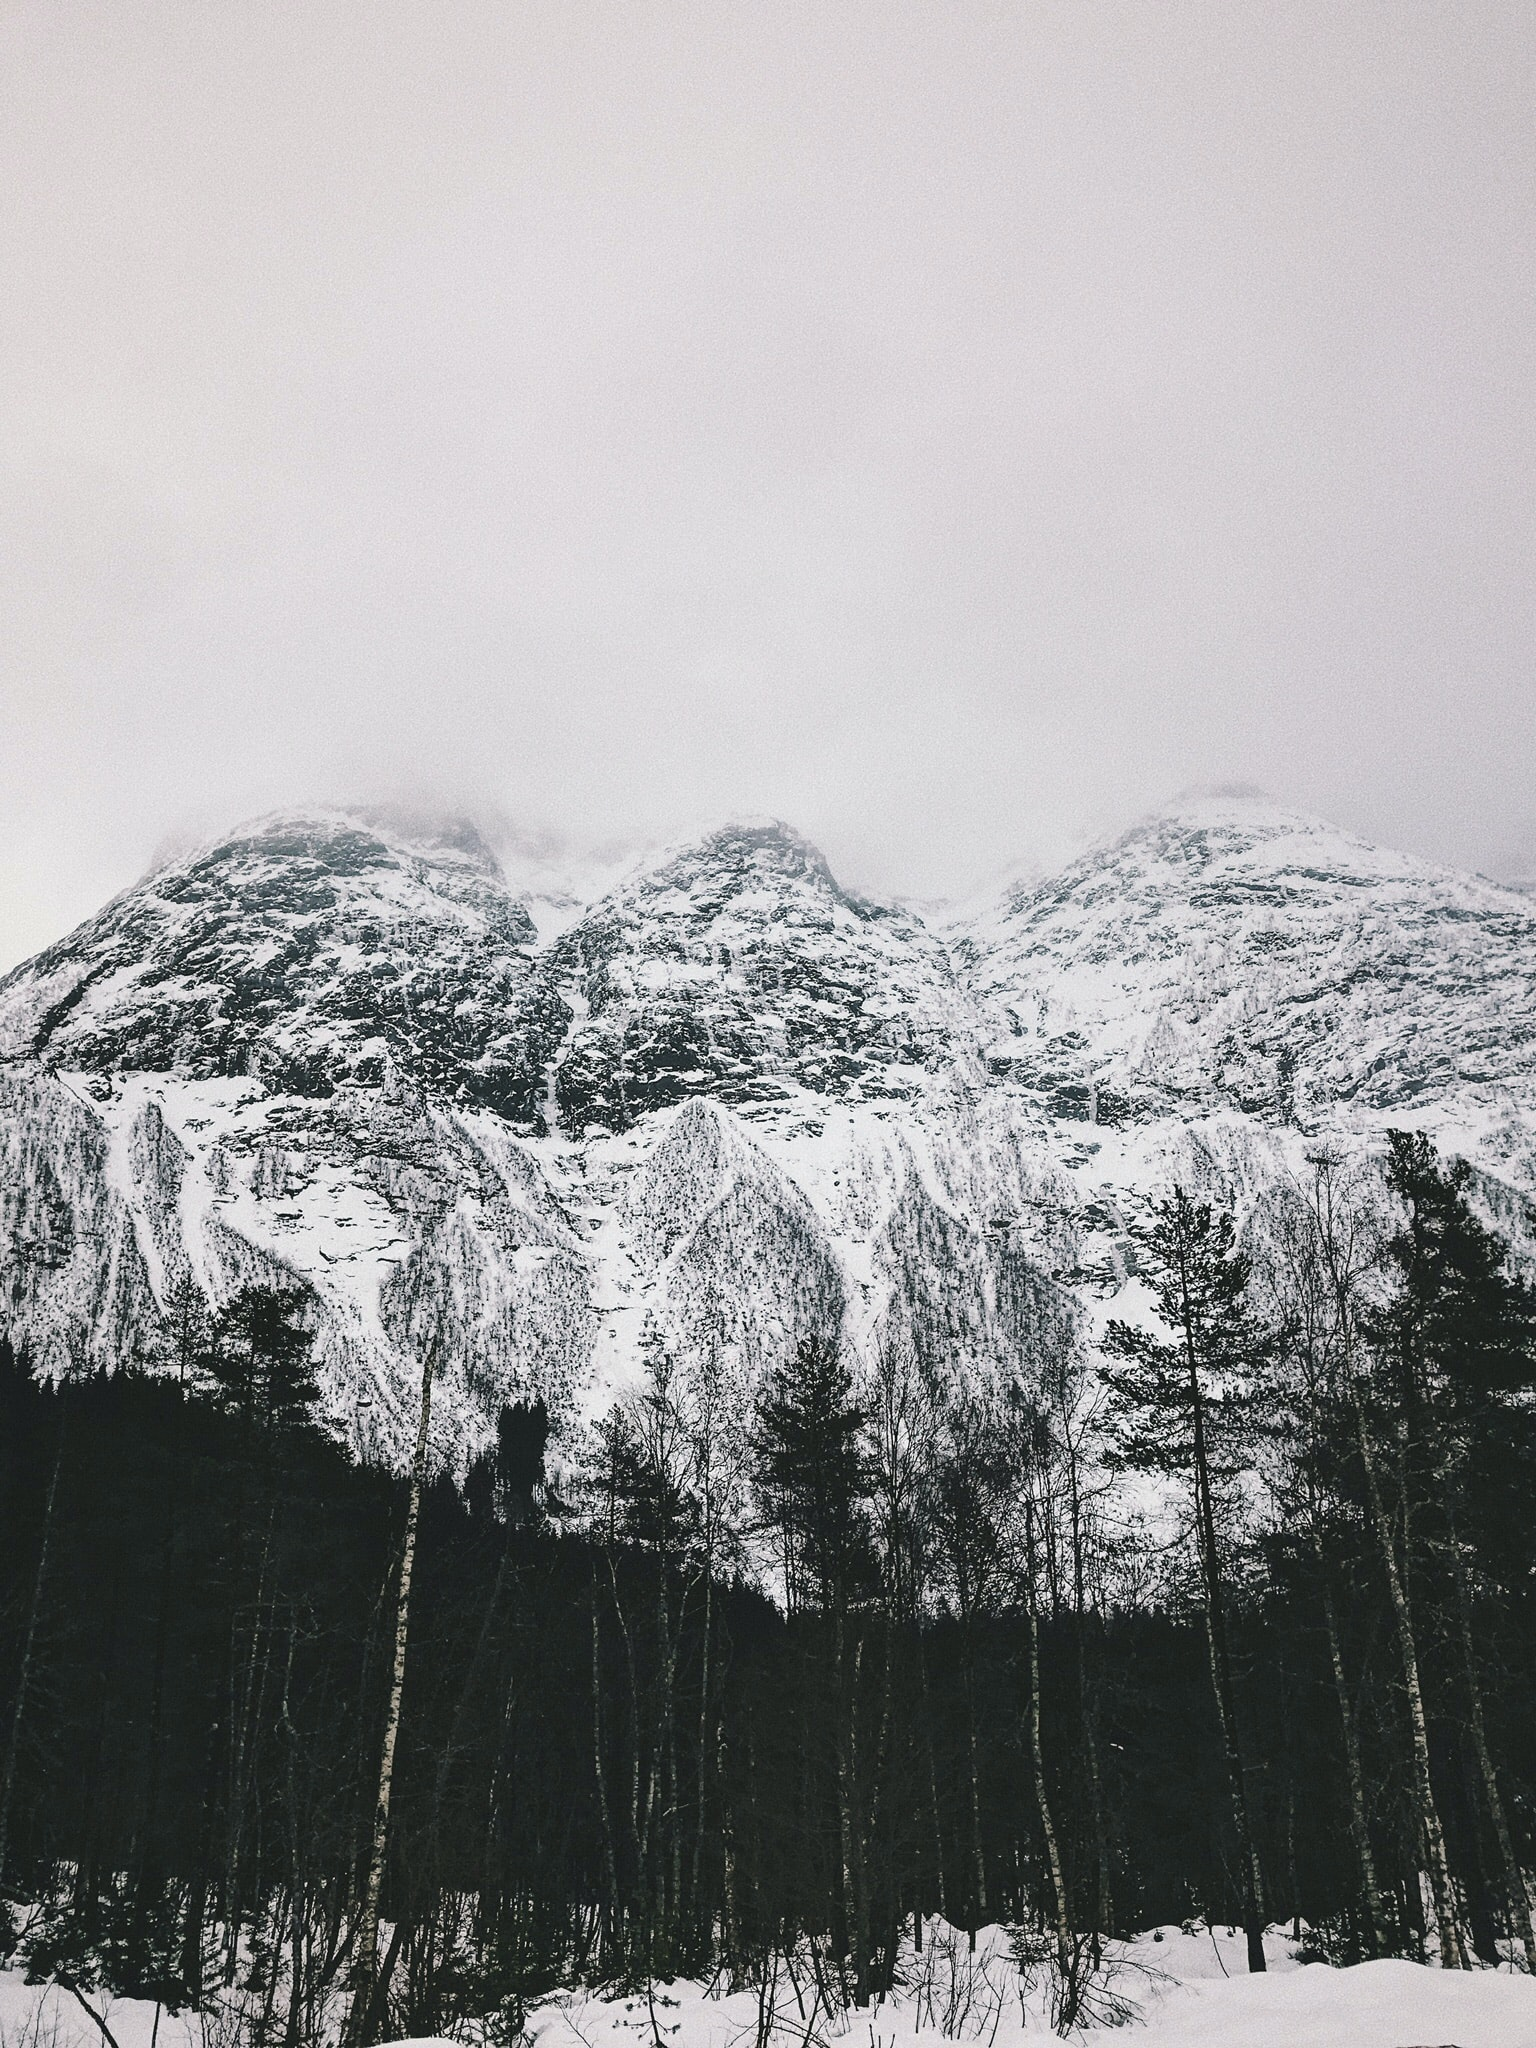 landscape photo of trees and mountain covered with snow